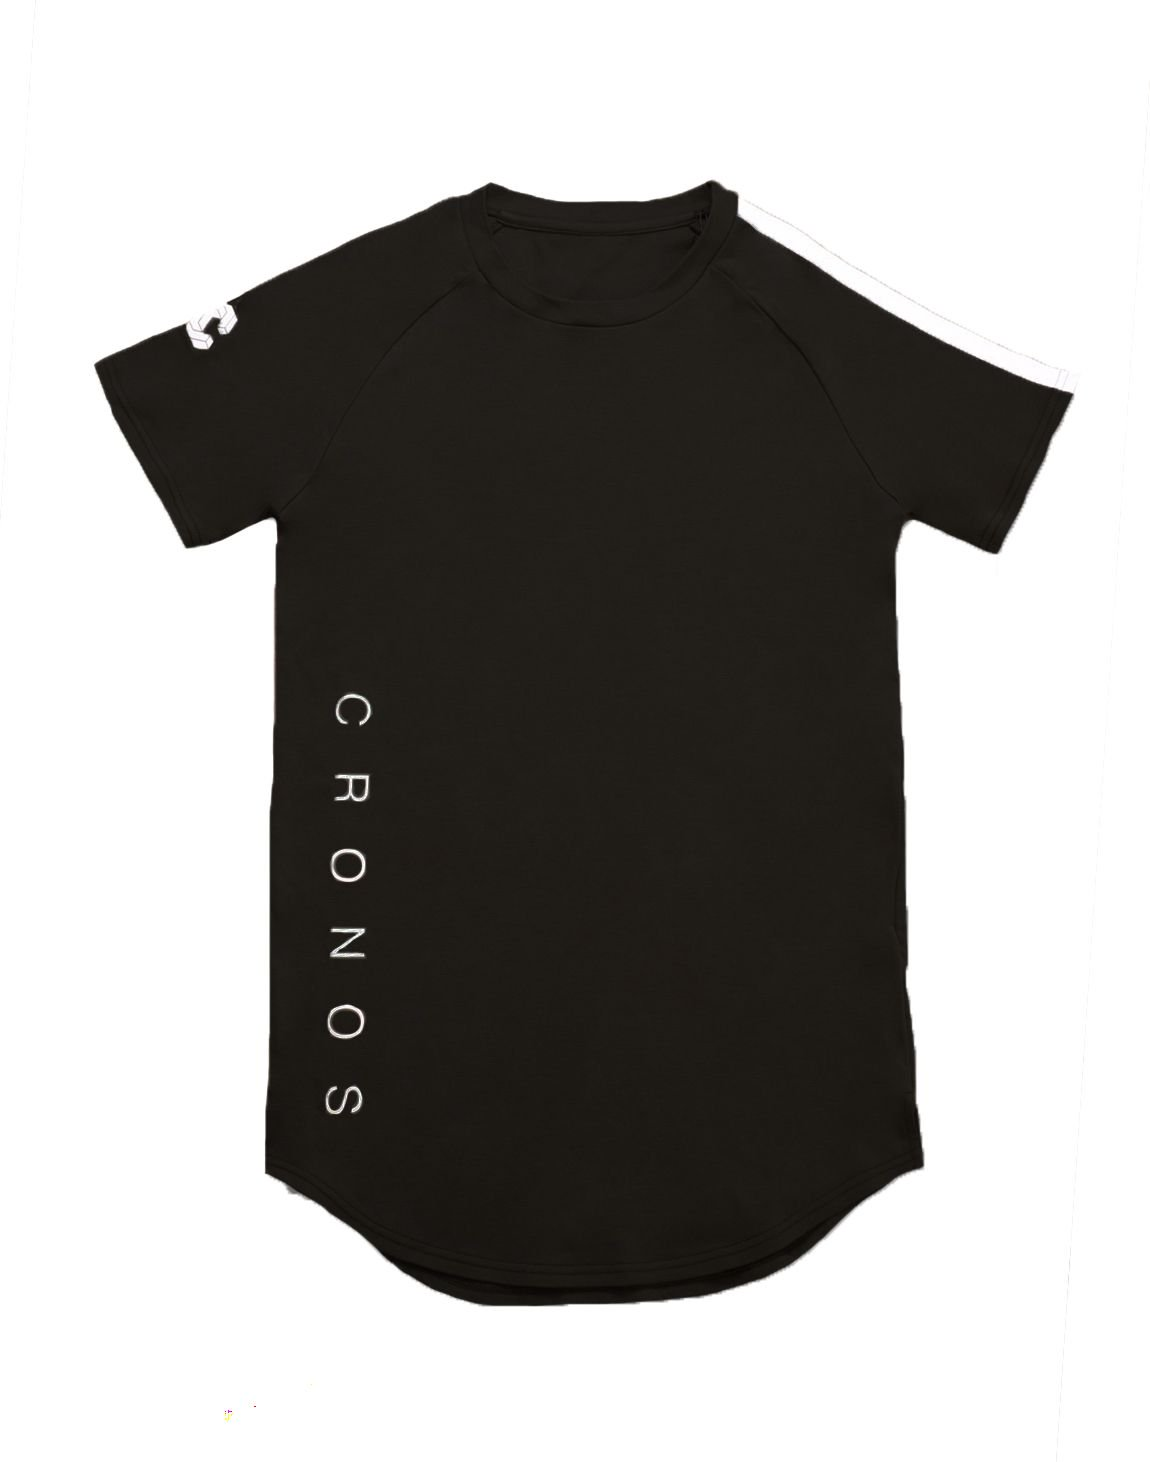 <img class='new_mark_img1' src='https://img.shop-pro.jp/img/new/icons55.gif' style='border:none;display:inline;margin:0px;padding:0px;width:auto;' />CRONOS SHOULDER TWO LINE T-SHIRTS【BLACK】